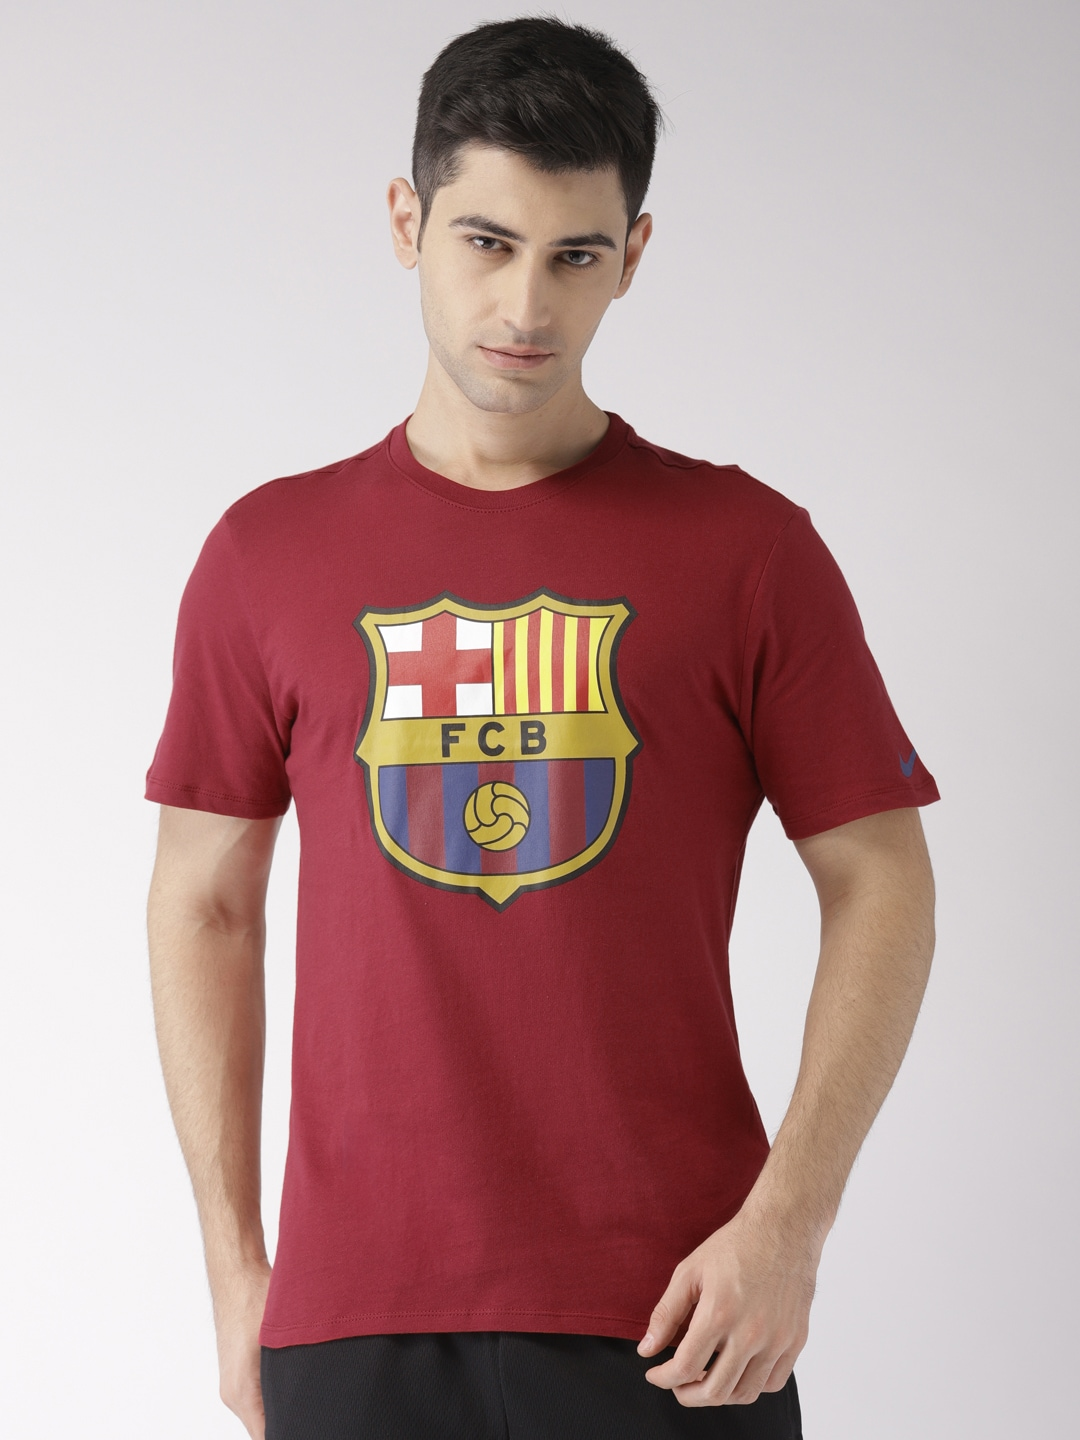 90f7d6adc5f Nike French Connection Fcb Tshirts - Buy Nike French Connection Fcb Tshirts  online in India